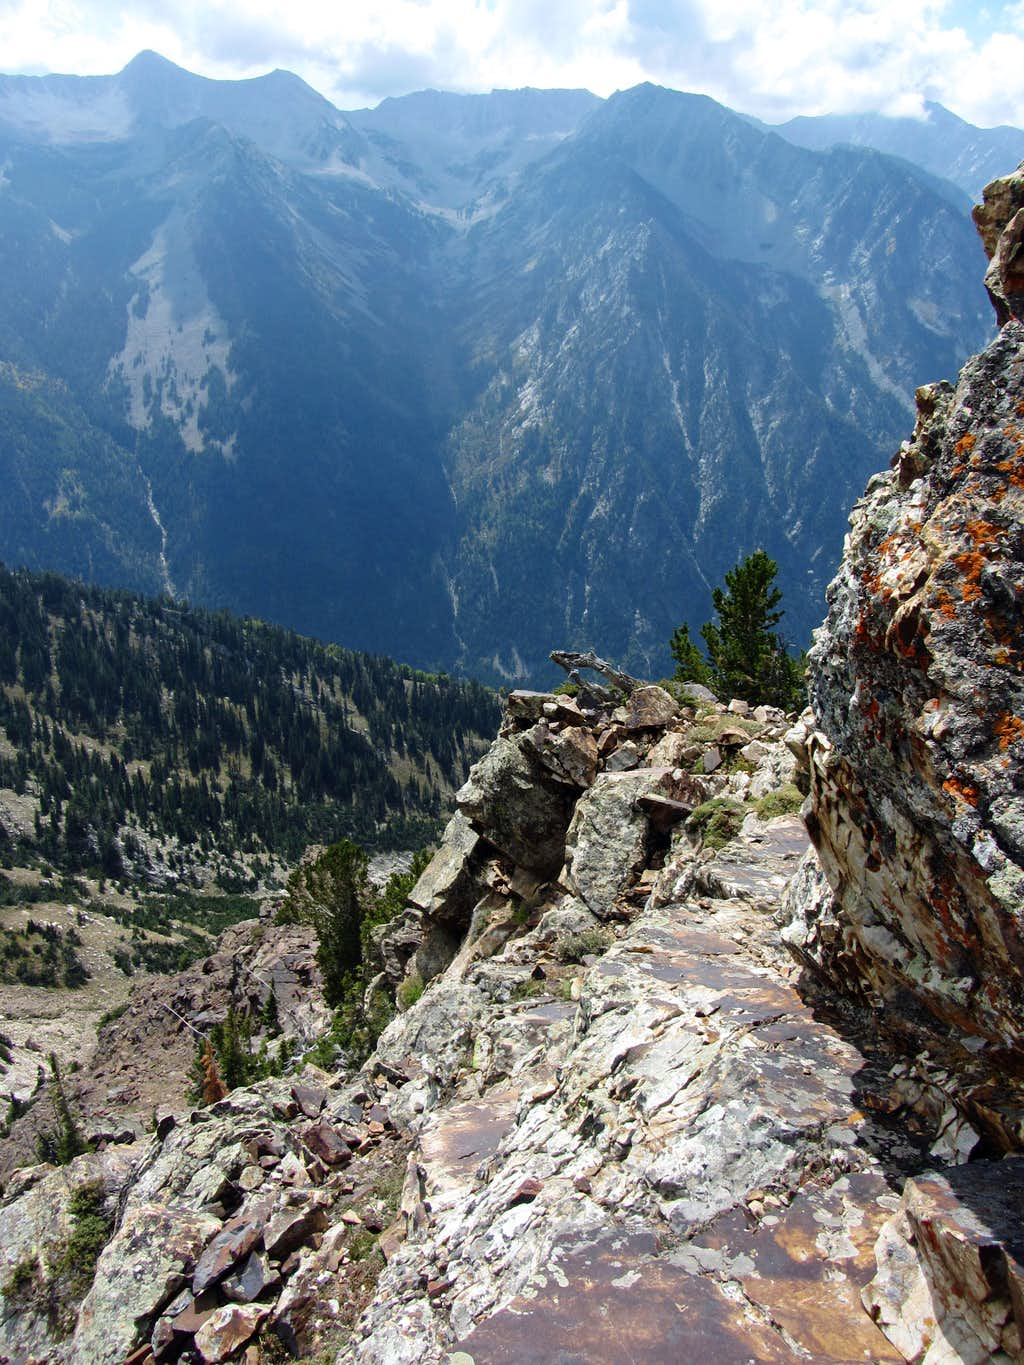 Sunrise Peak ledge